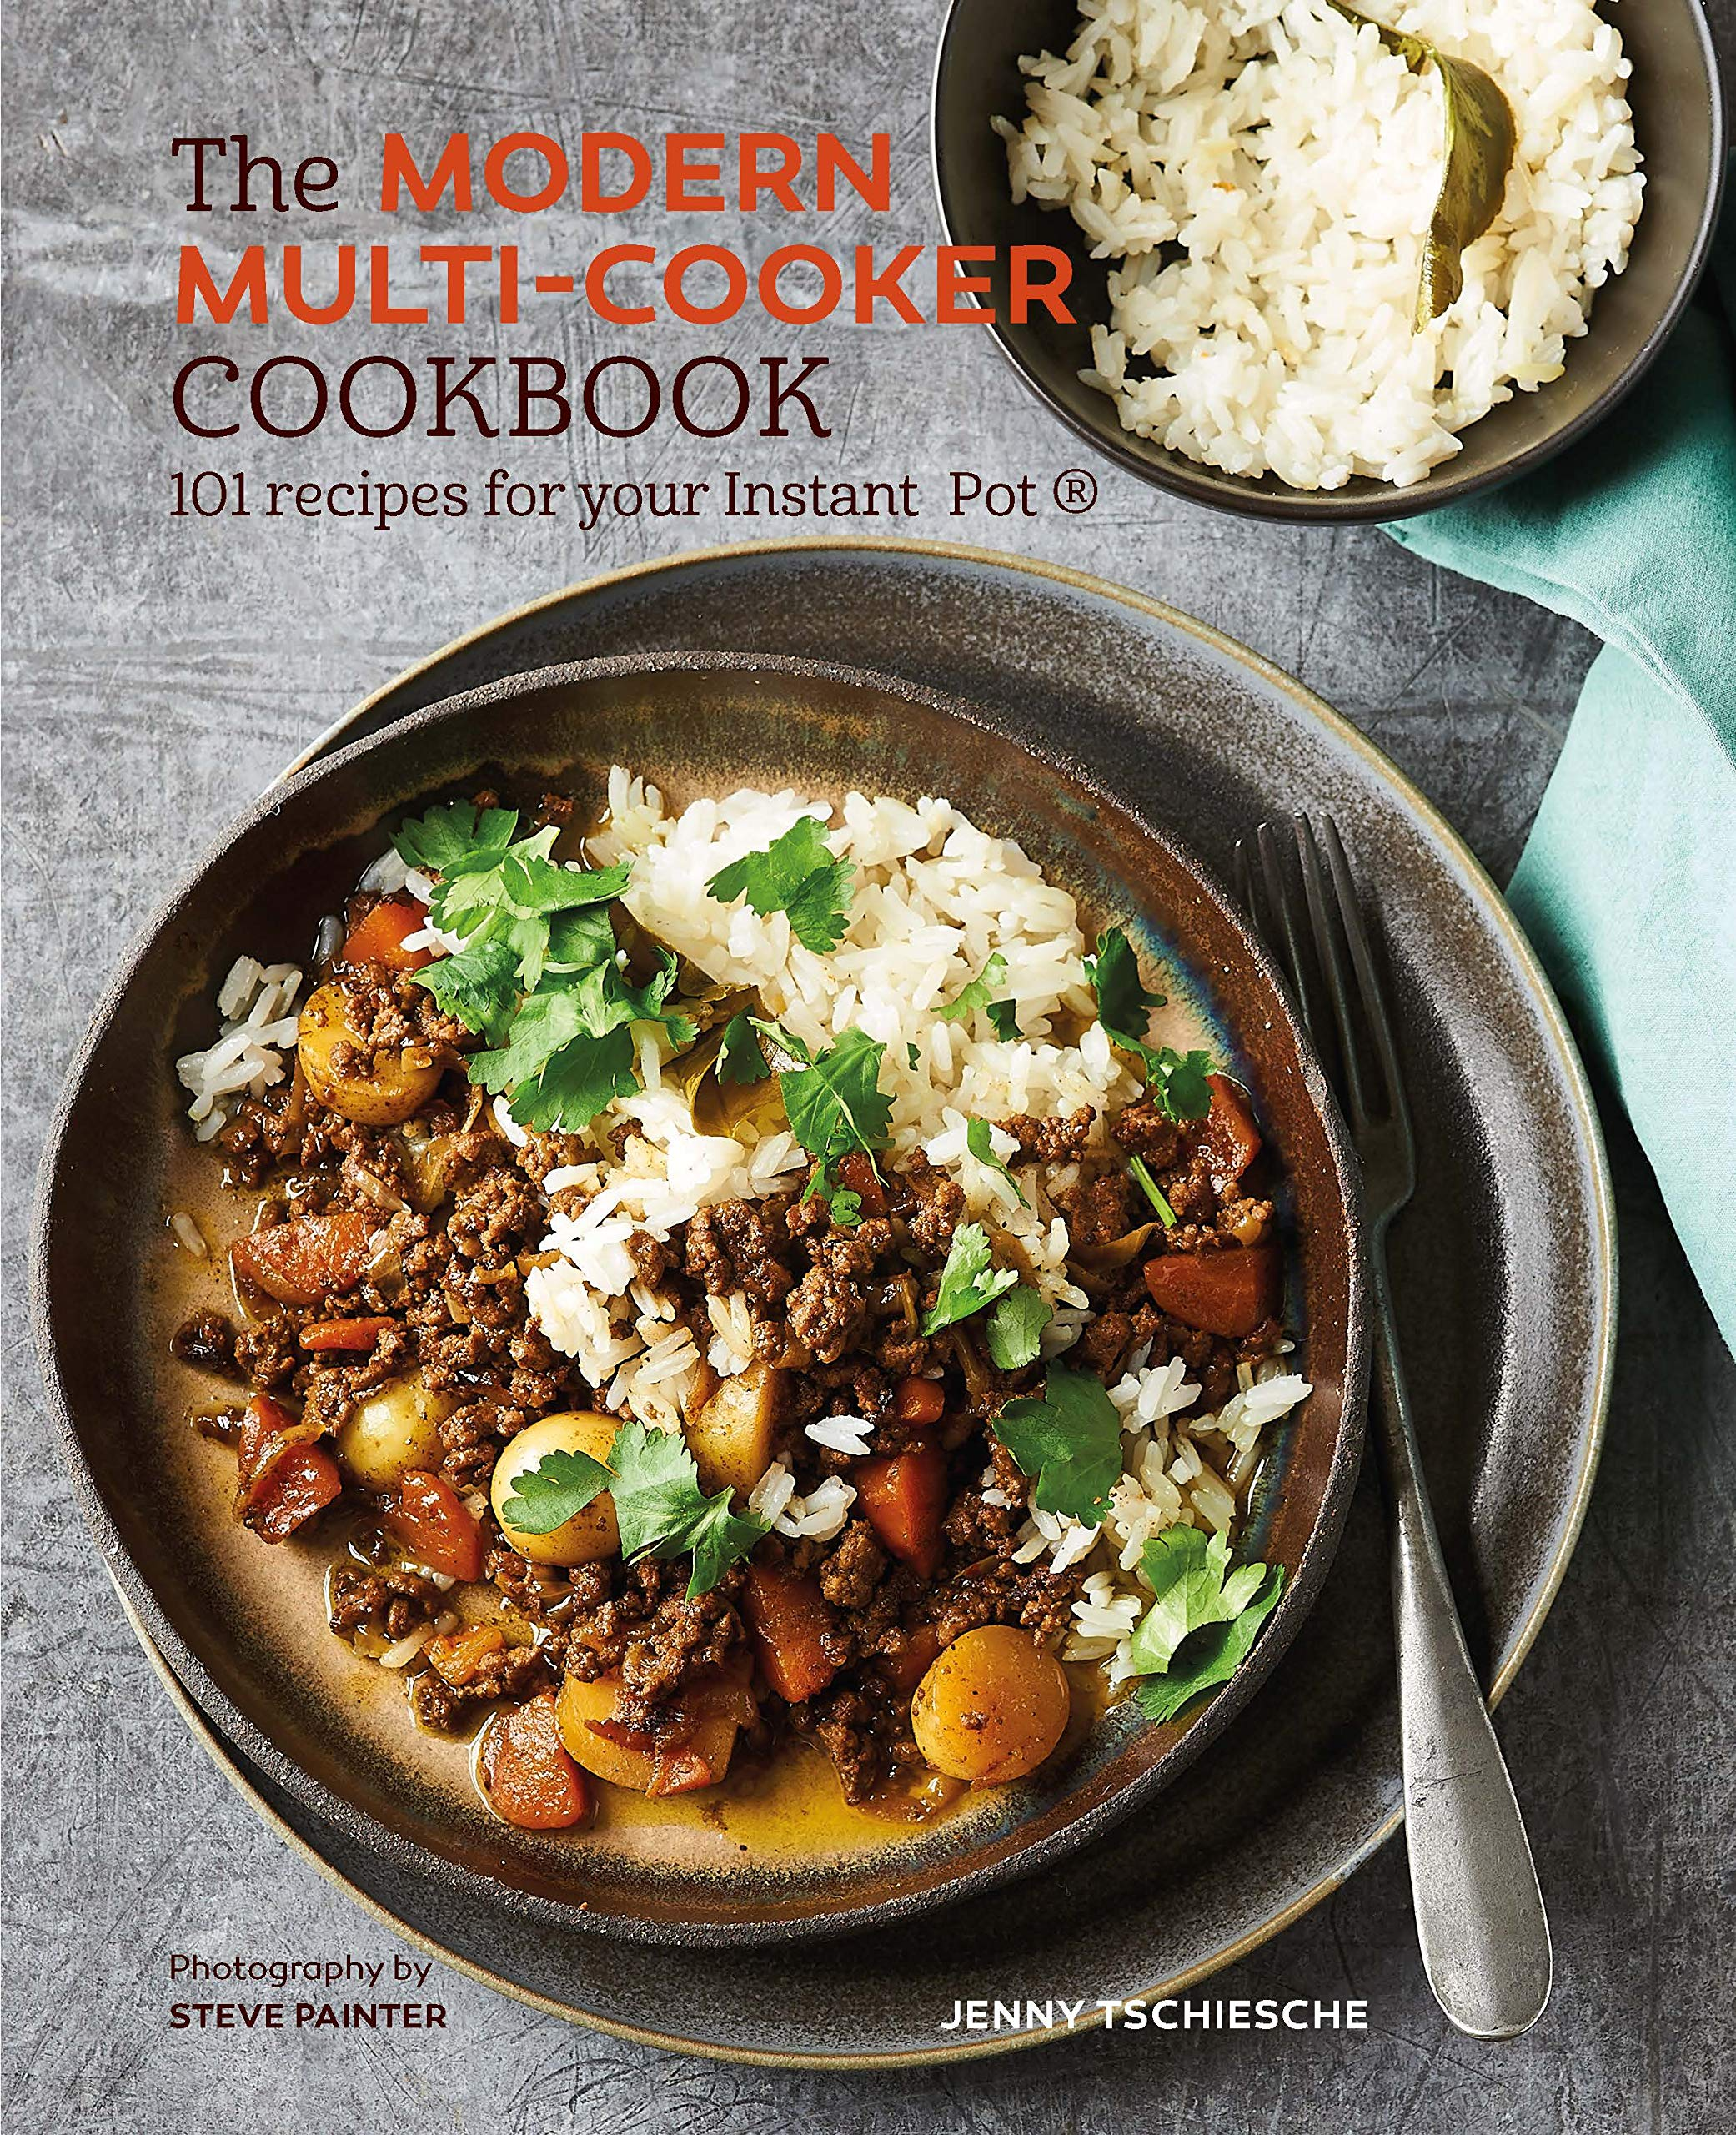 The Modern Multi-cooker Cookbook: 8 Recipes for your Instant Pot